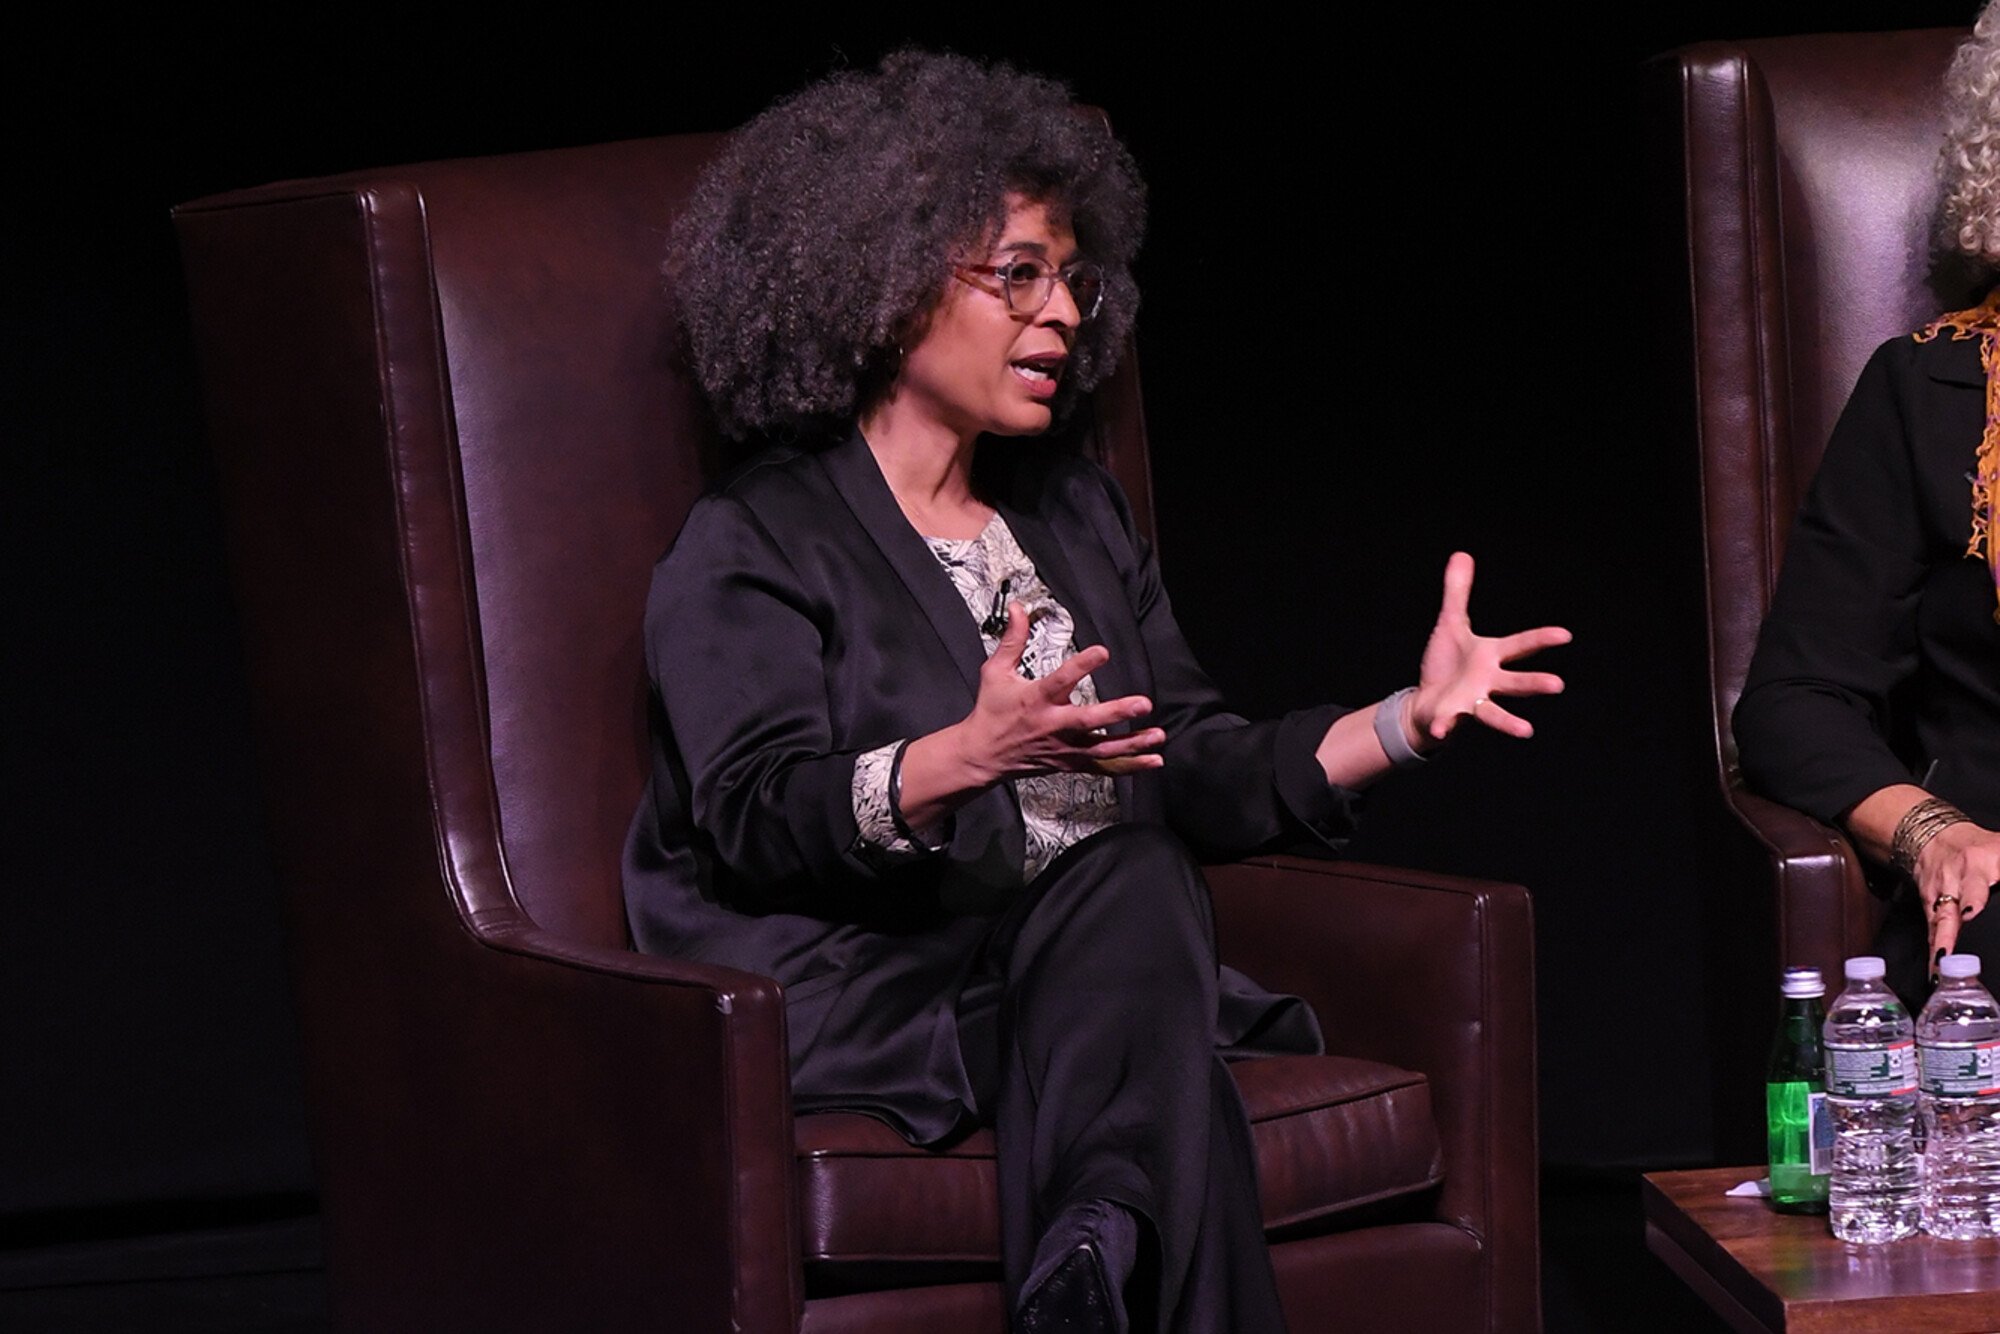 Gina Dent sits in a chair on stage with hands out in mid-sentence